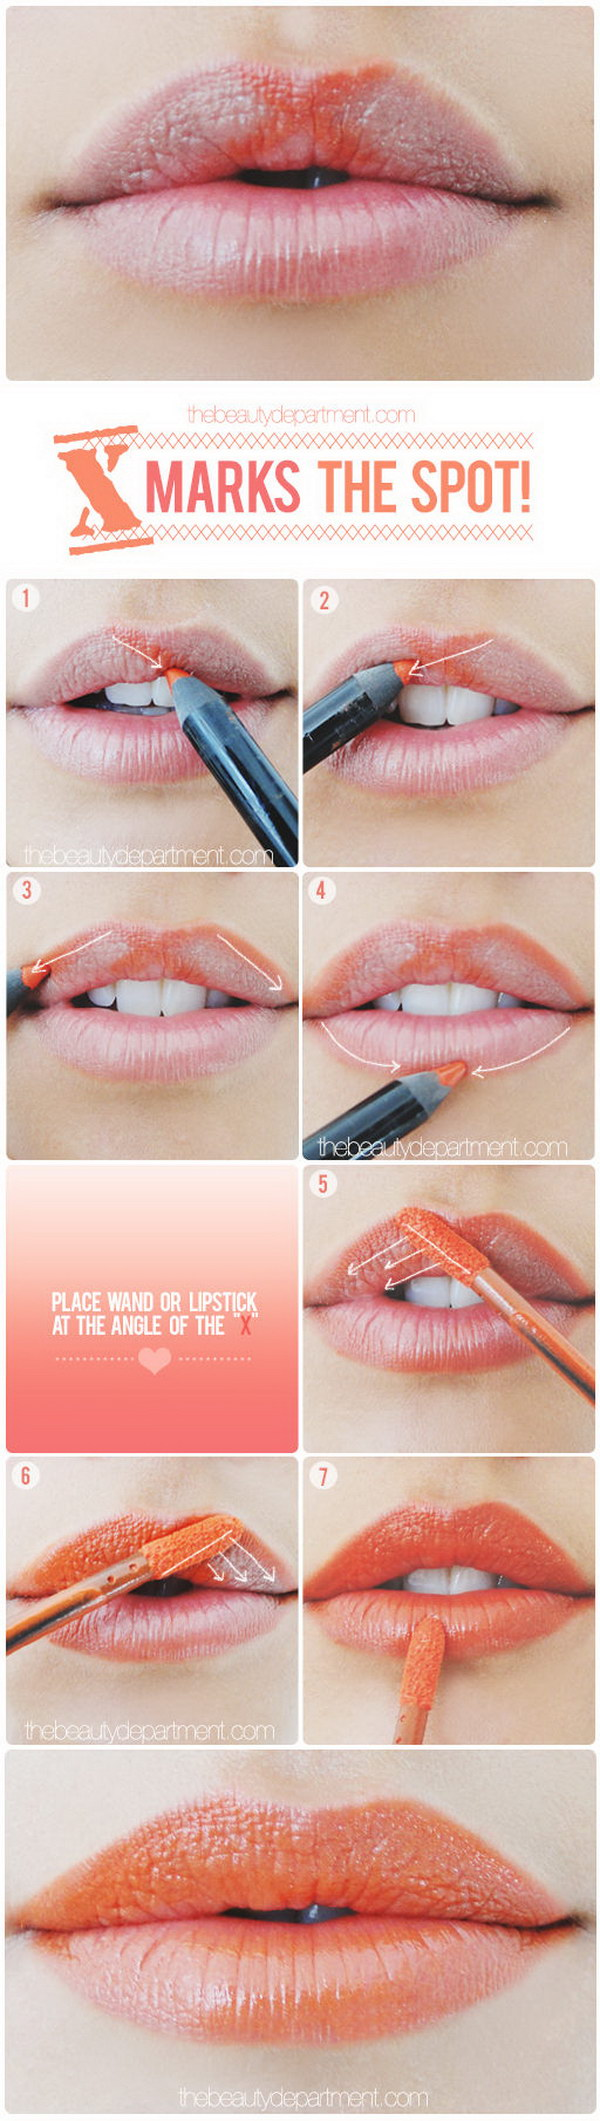 Make a Subtle Difference with X Markers on Your Upper Lip.